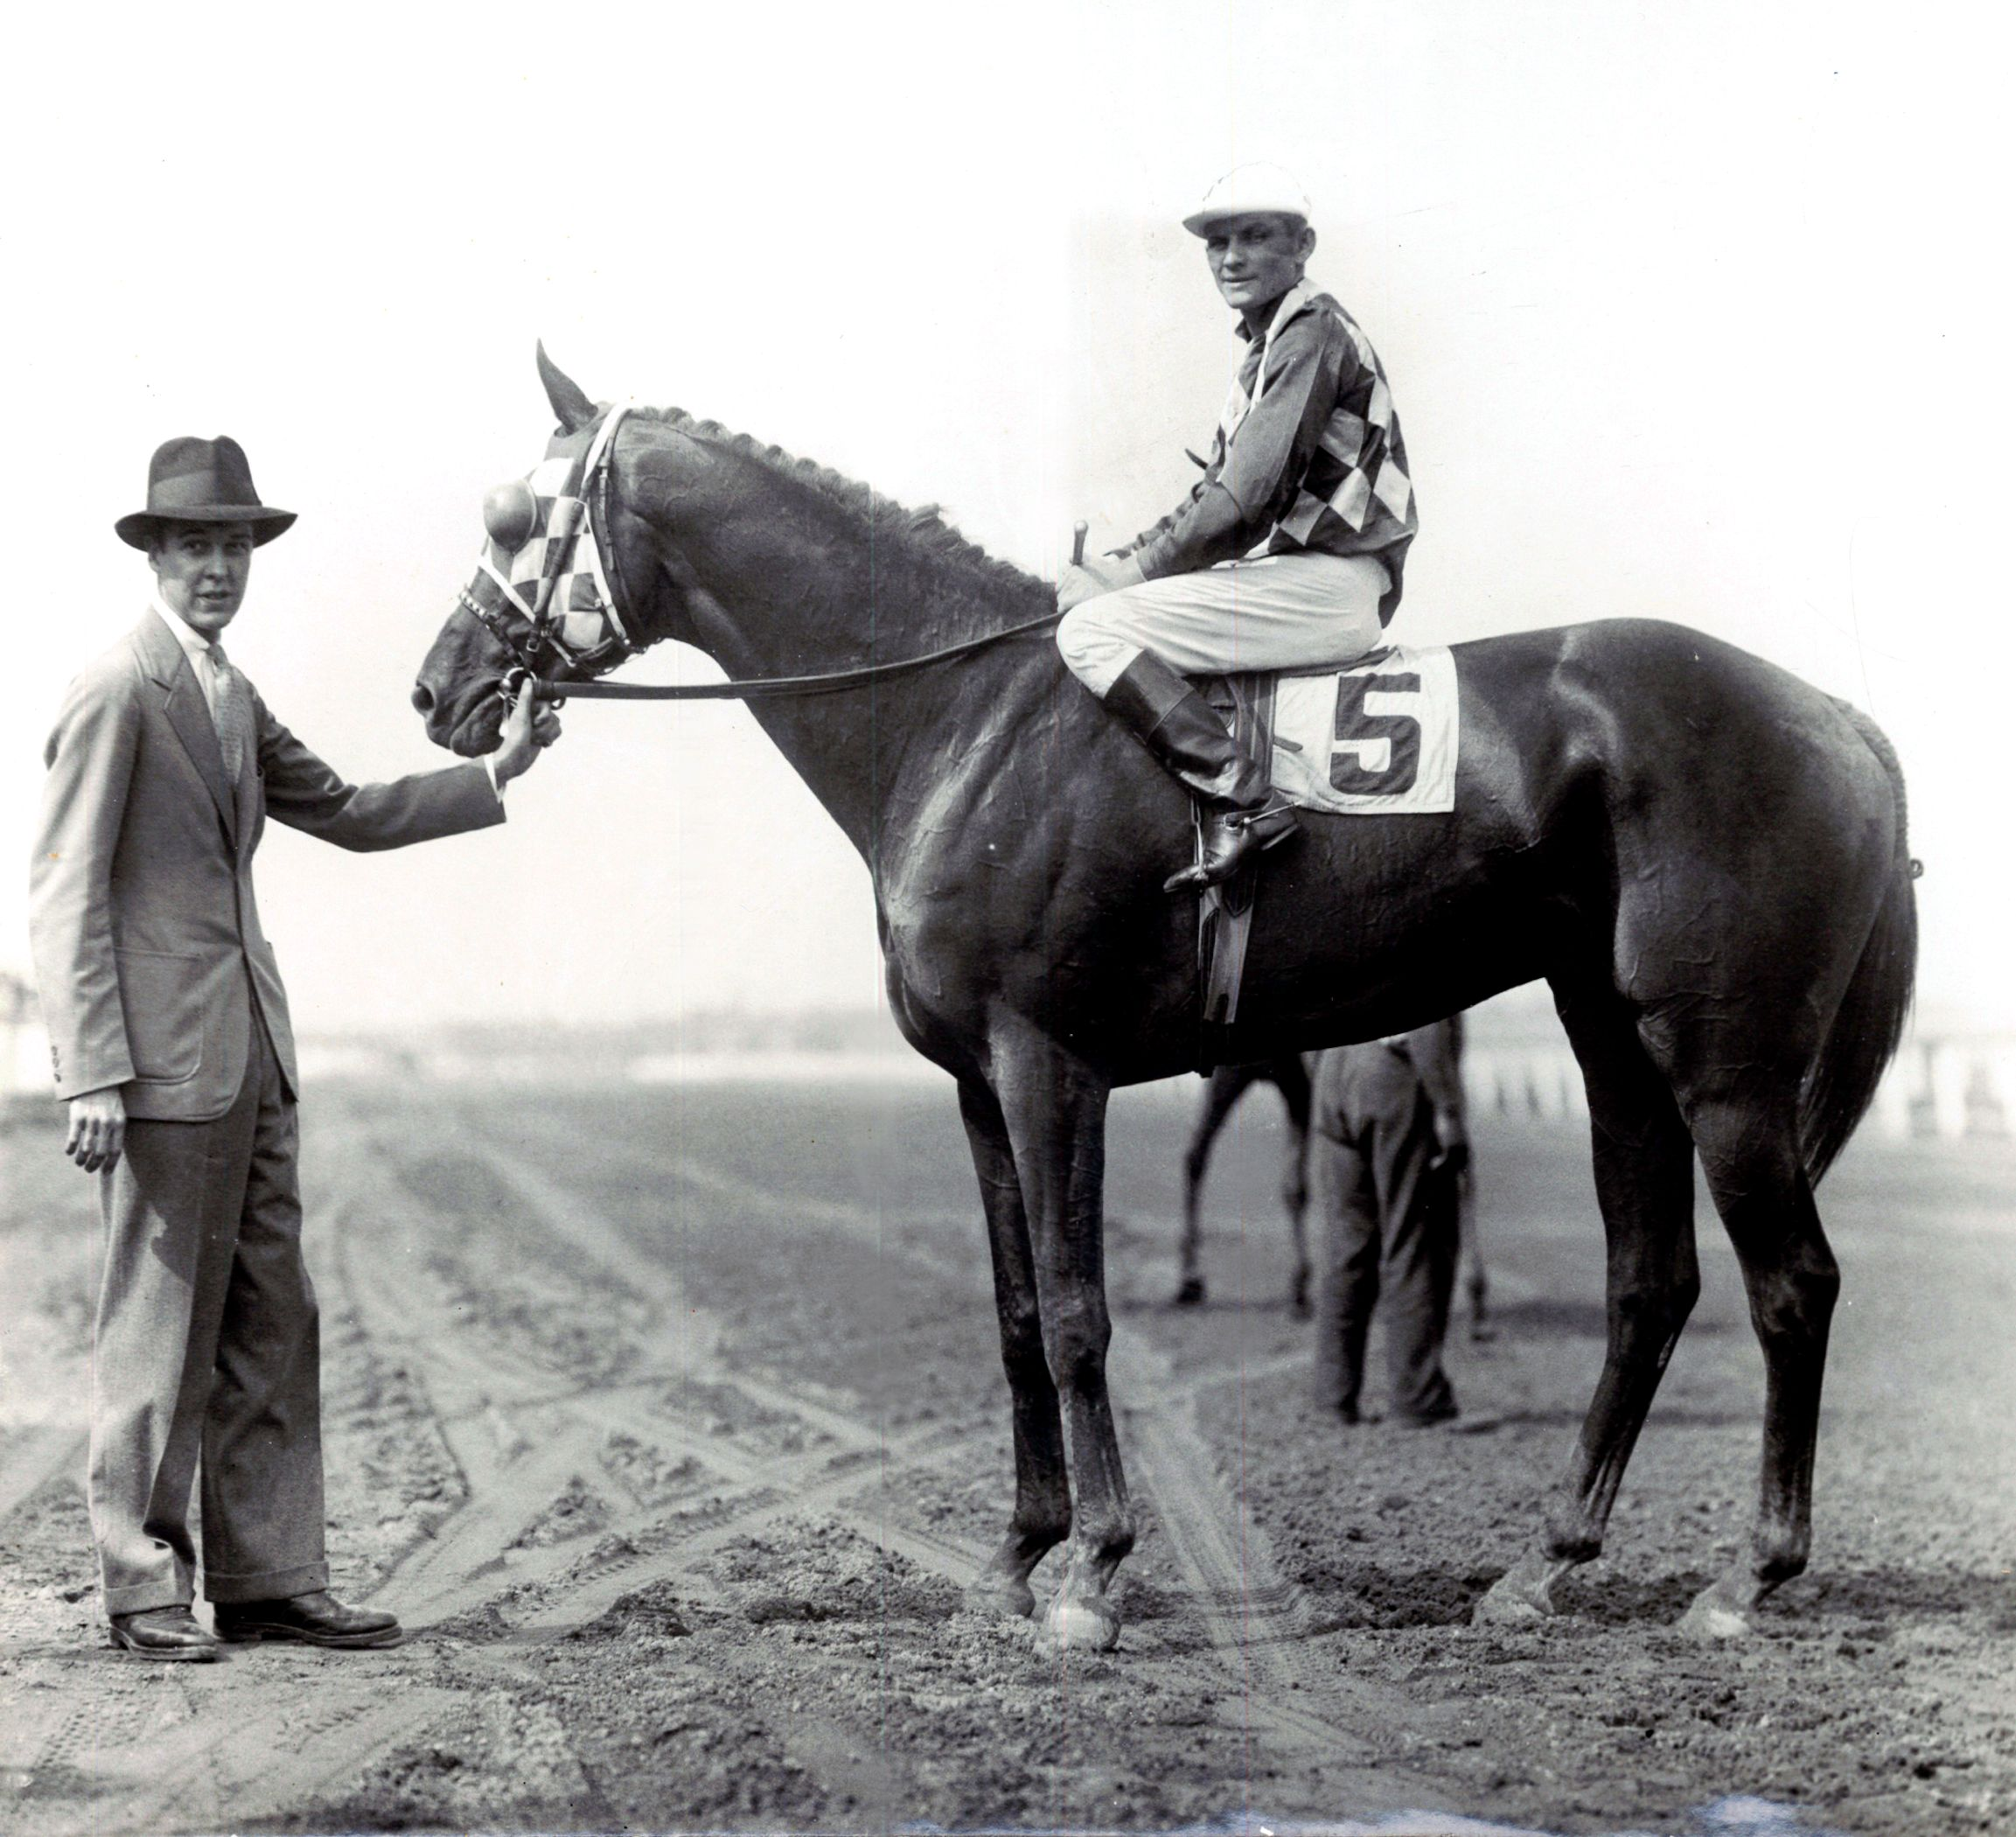 Discovery in the winner's circle at Aqueduct with owner Alfred G. Vanderbilt on June 28, 1934 (C.C. Cook/Museum Collection)